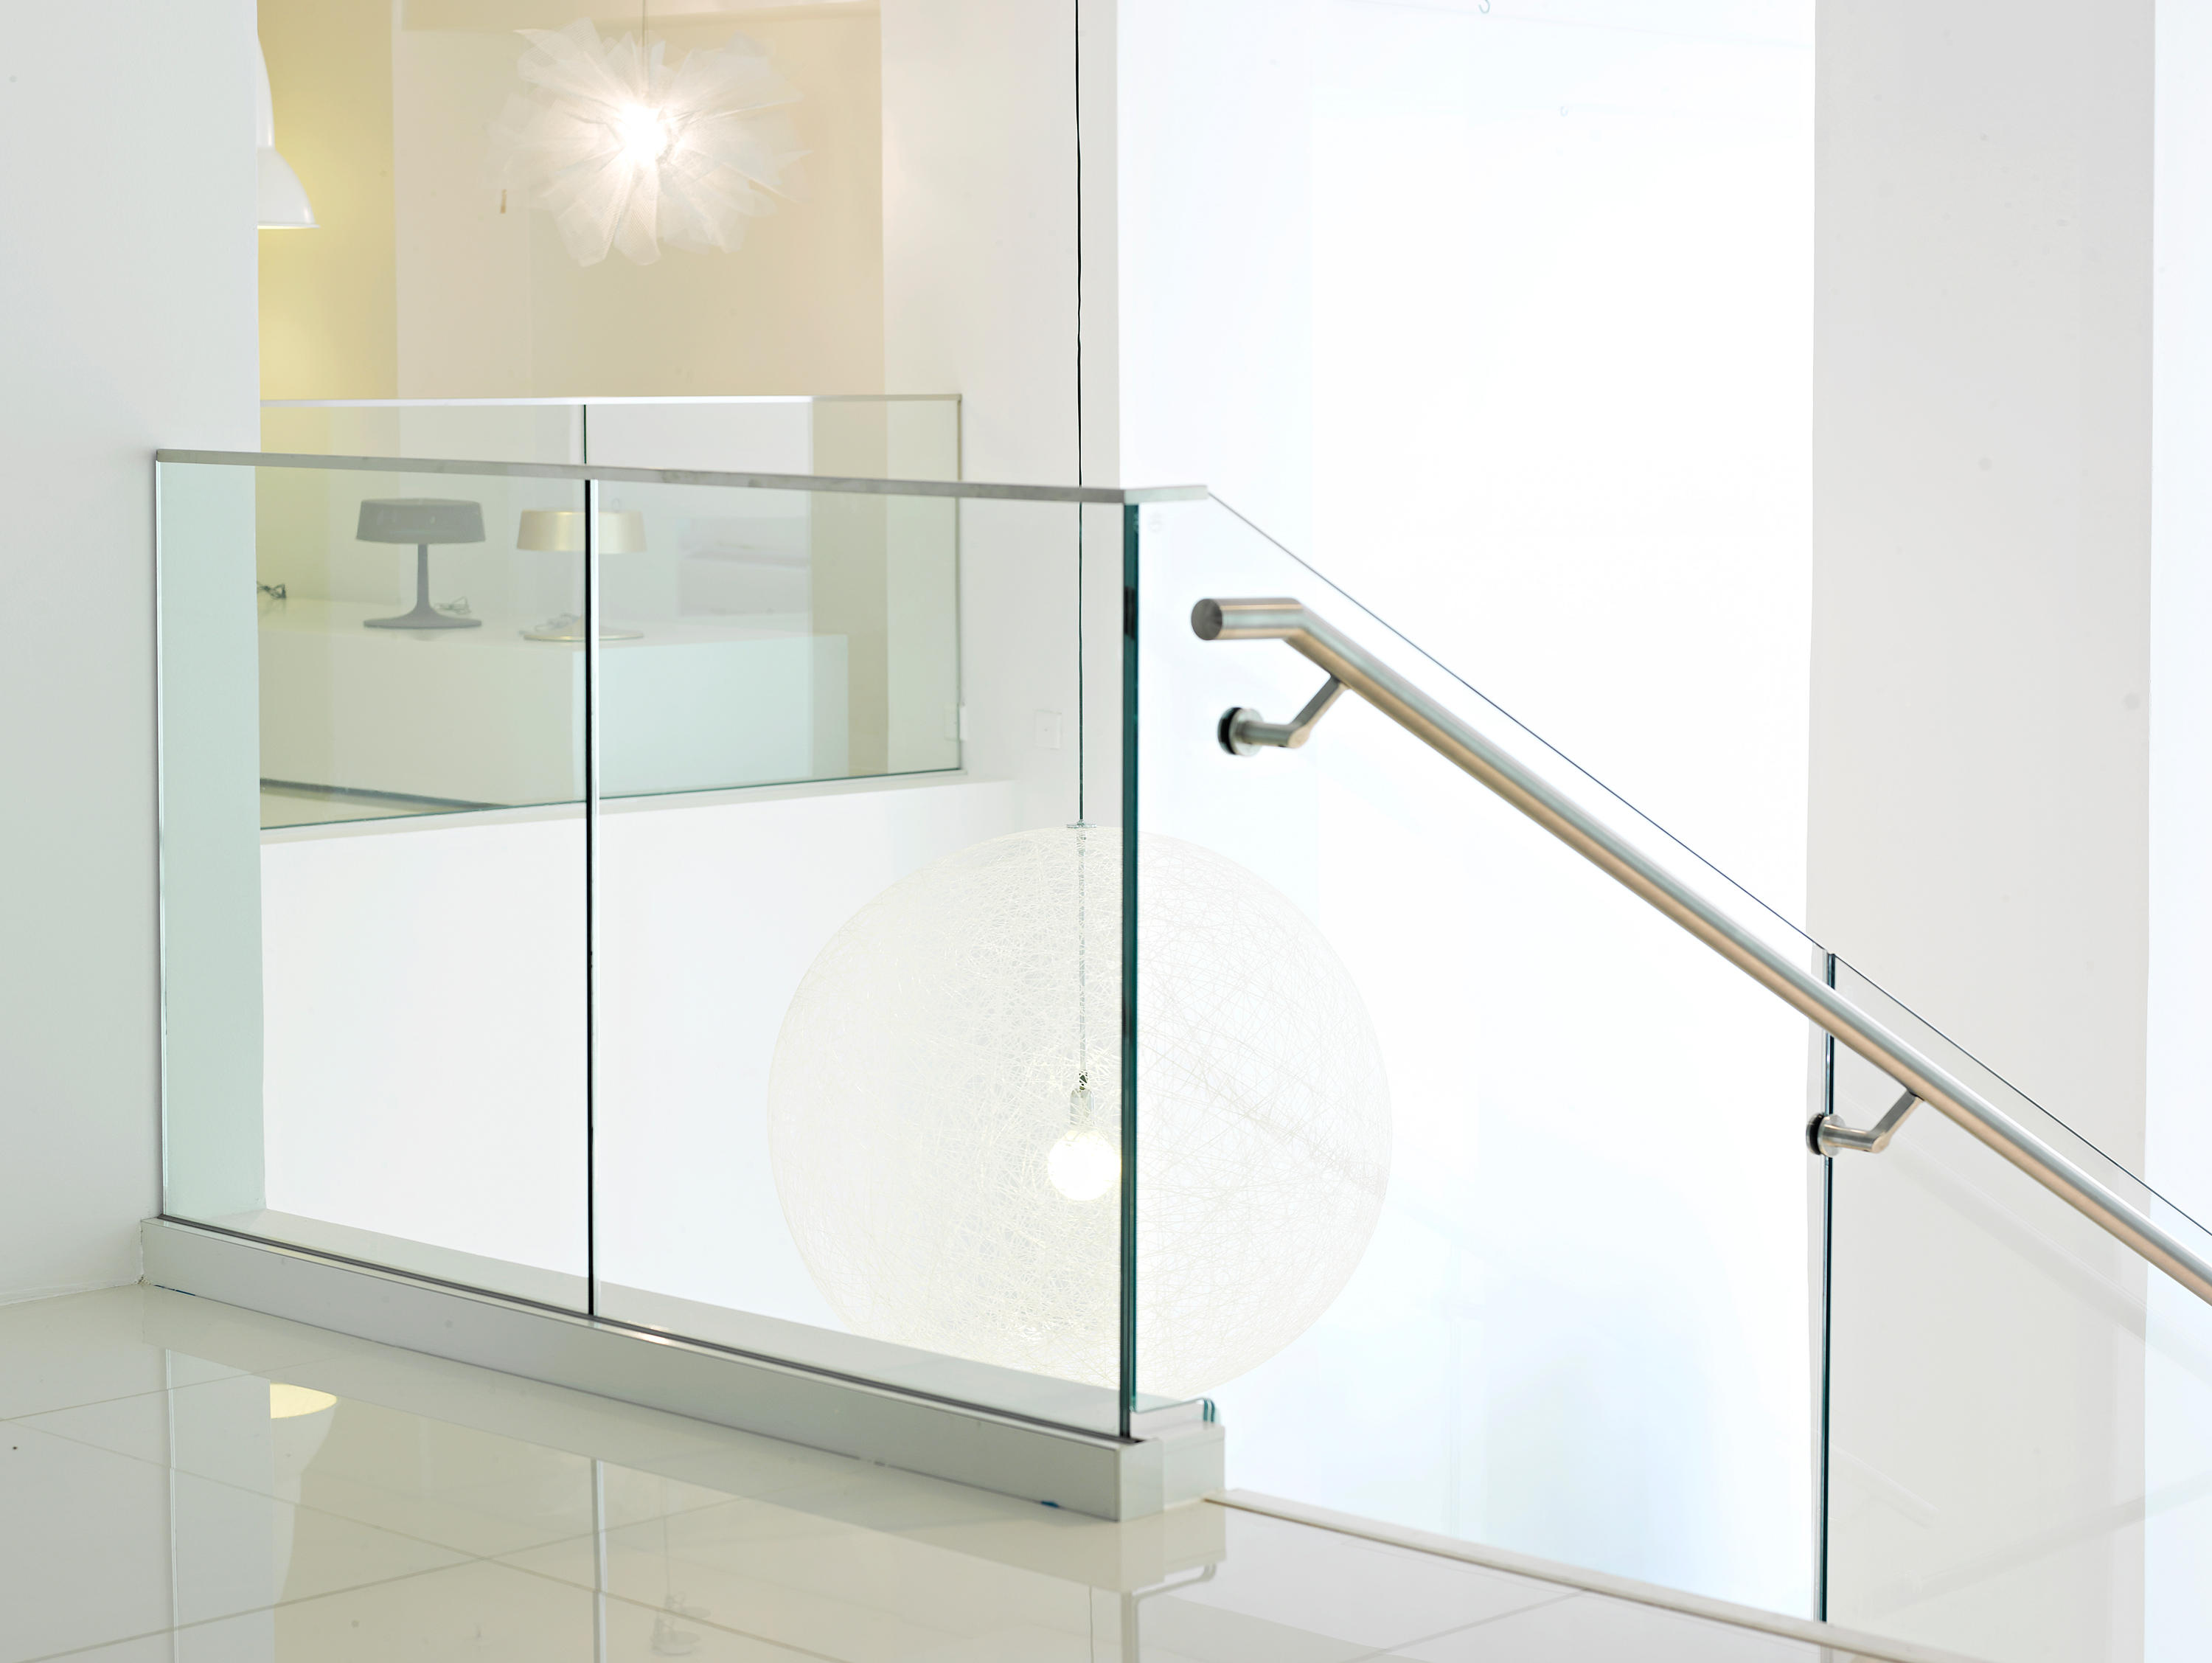 LK60 GLASS RAILINGS - Balustrades from Steelpro | Architonic